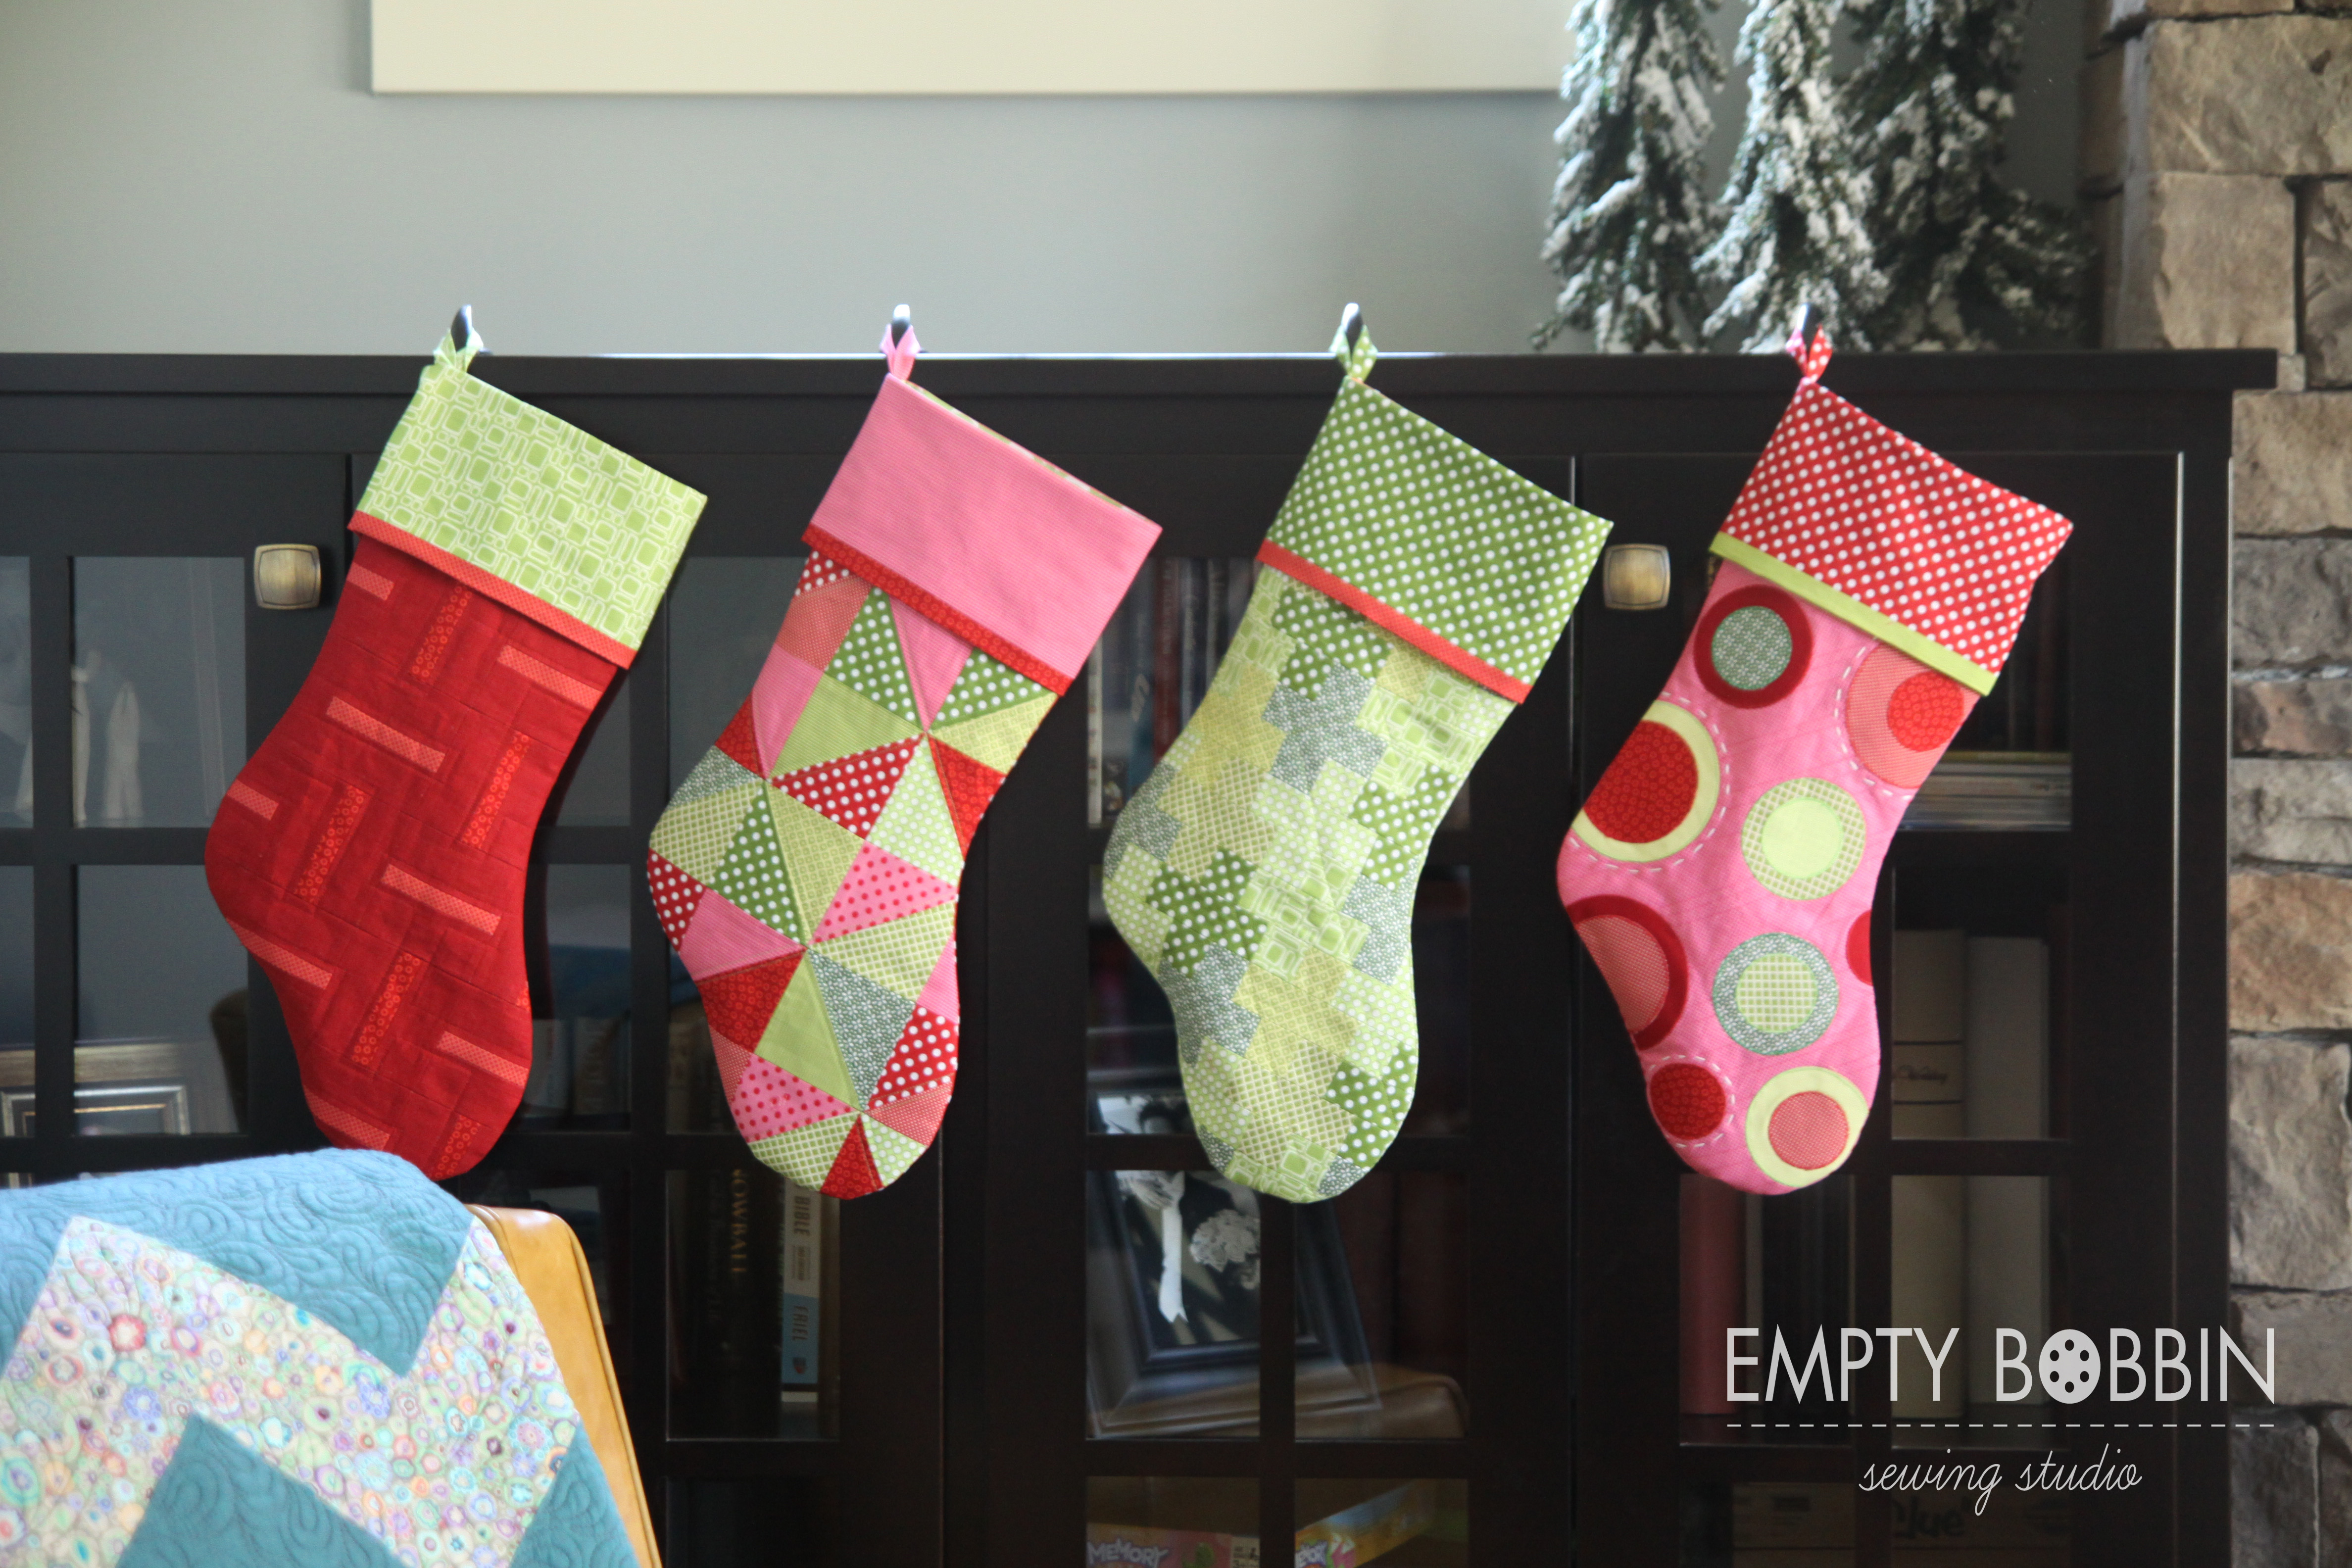 Christmas Stocking Pattern Awesome Christmas Stockings In July Empty Bobbin Sewing Studio Of Amazing 47 Ideas Christmas Stocking Pattern